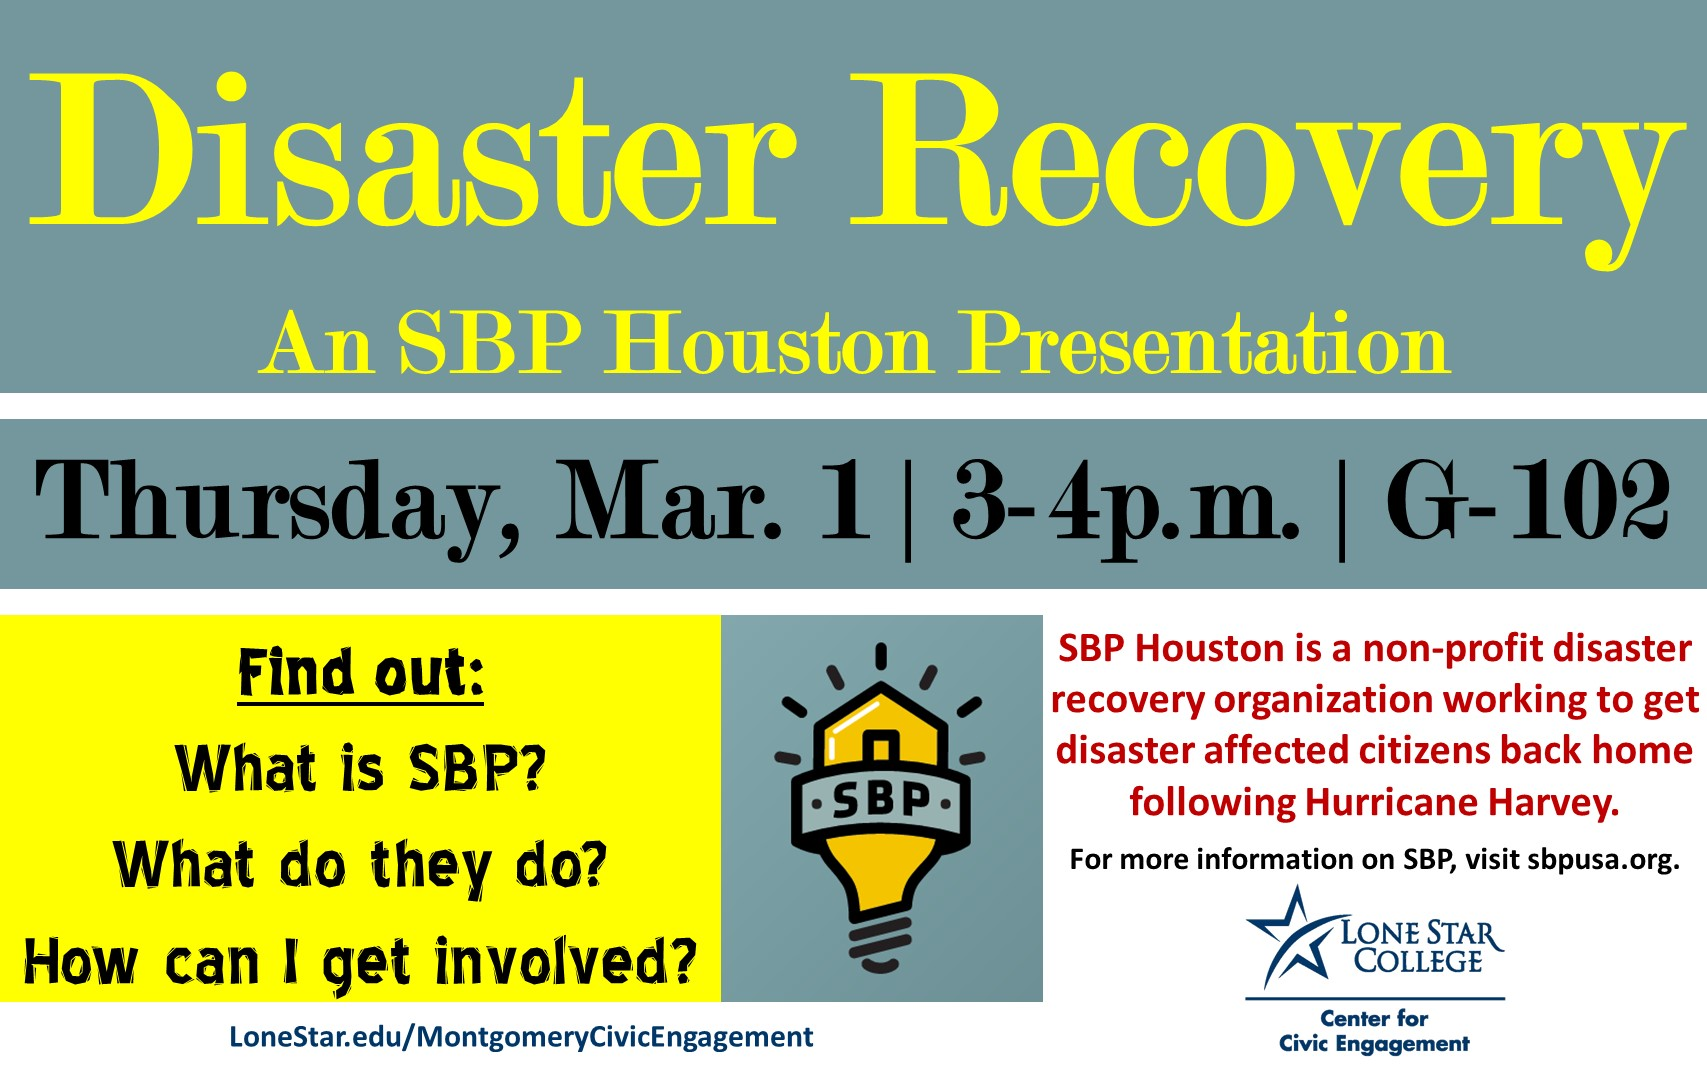 lonestaredu LSC-Montgomery - Disaster Recovery: An SBP Houston Presentation